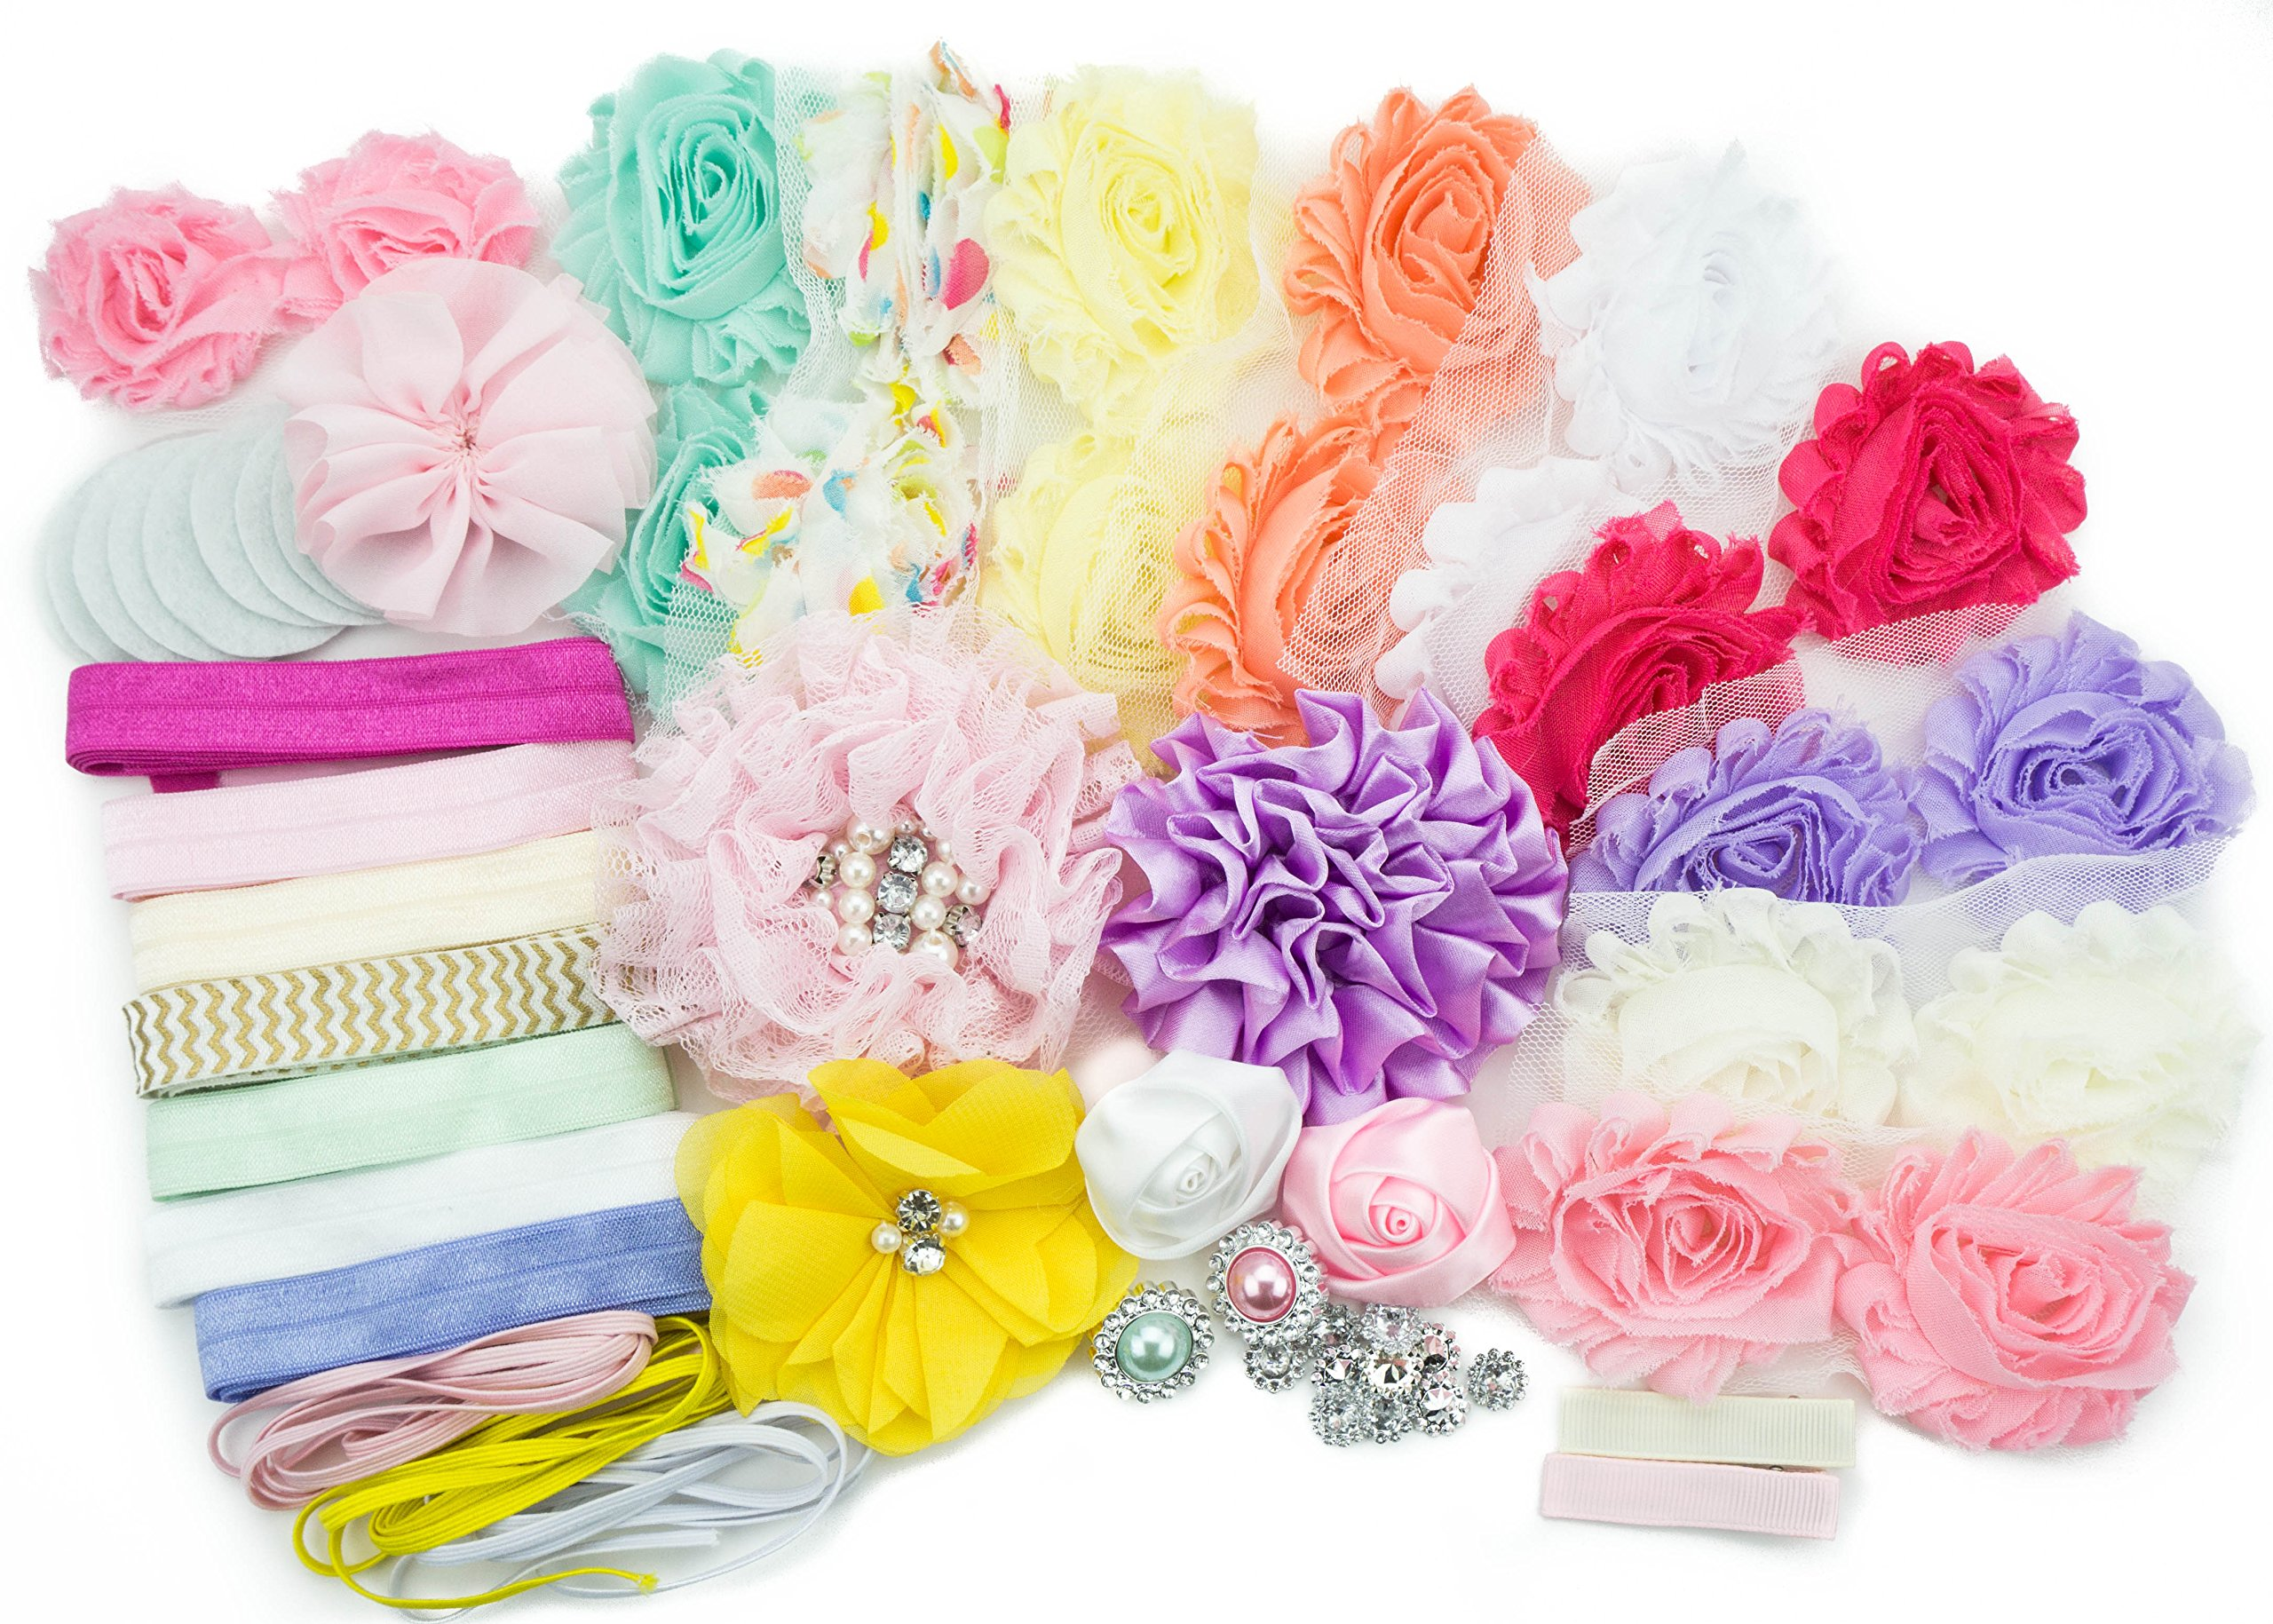 Amazon Baby Shower Headband Station DIY Kit by JLIKA Make